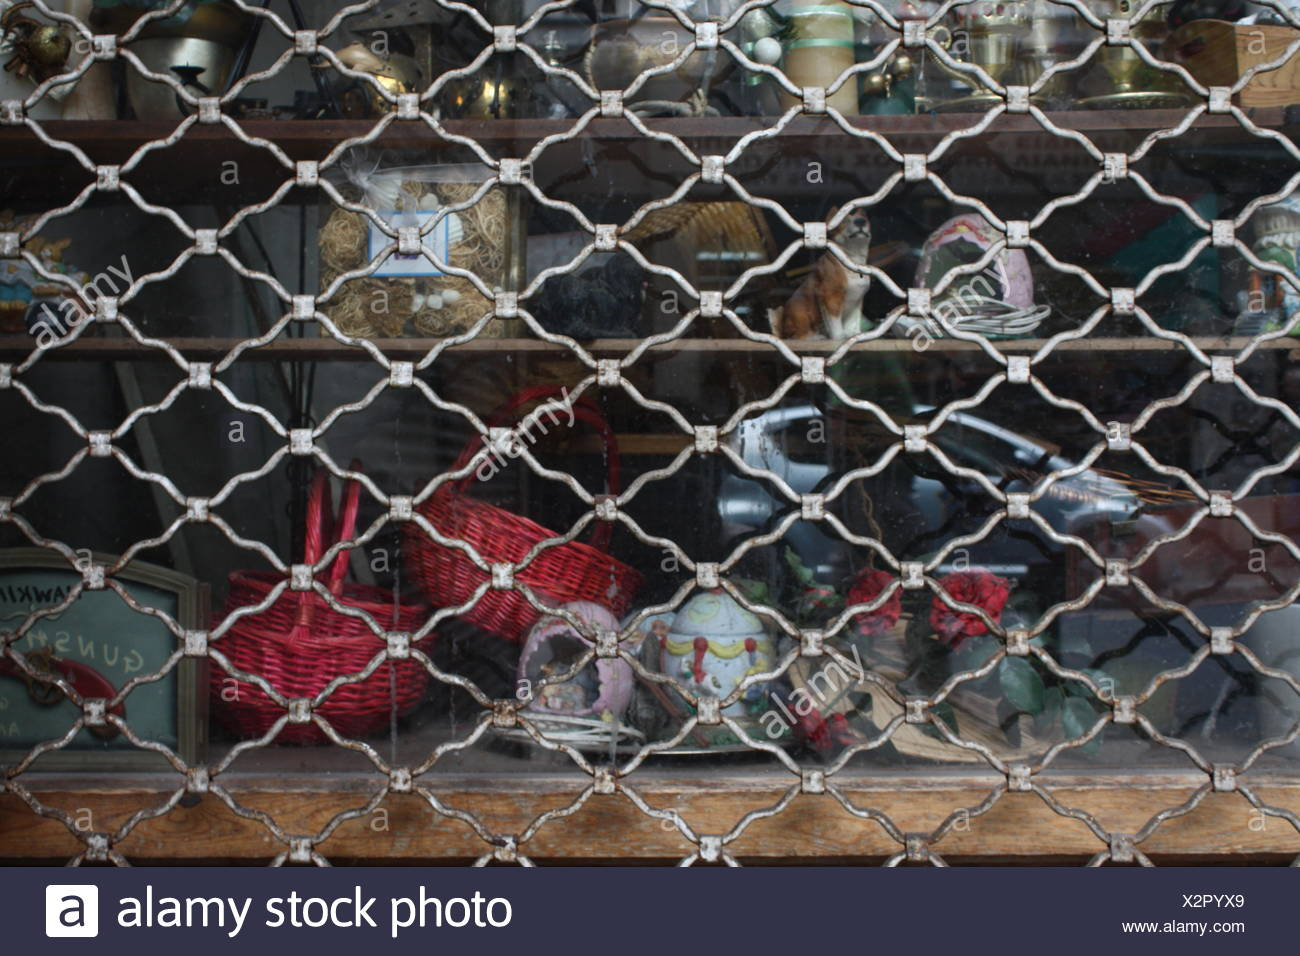 Close-Up Of Vintage Objects In Shelf Stock Photo: 277100049 - Alamy